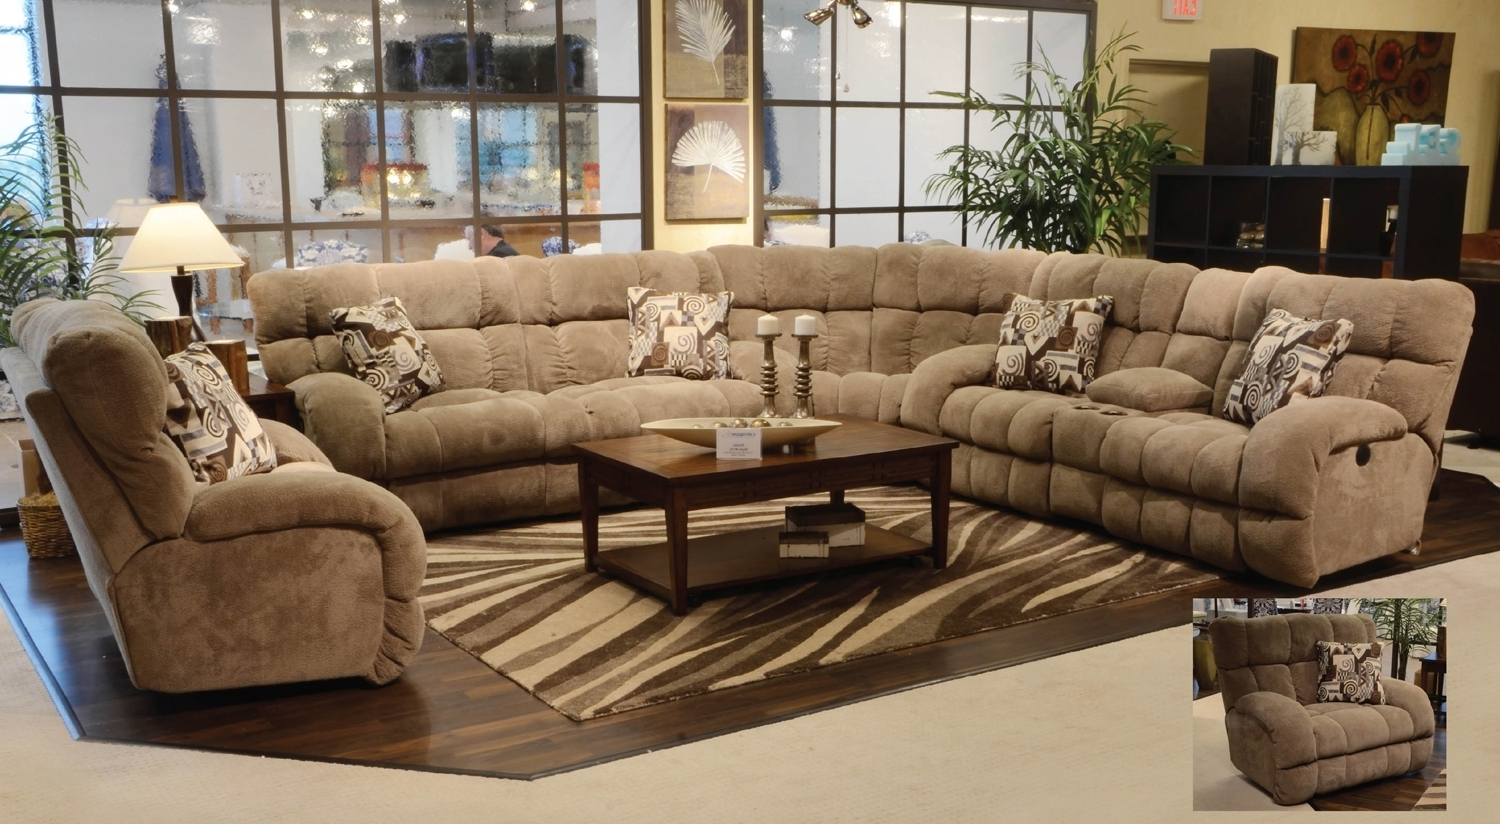 Big Comfortable Large Sectional Sofacapricornradio Homes Regarding Preferred Large Comfortable Sectional Sofas (View 7 of 20)